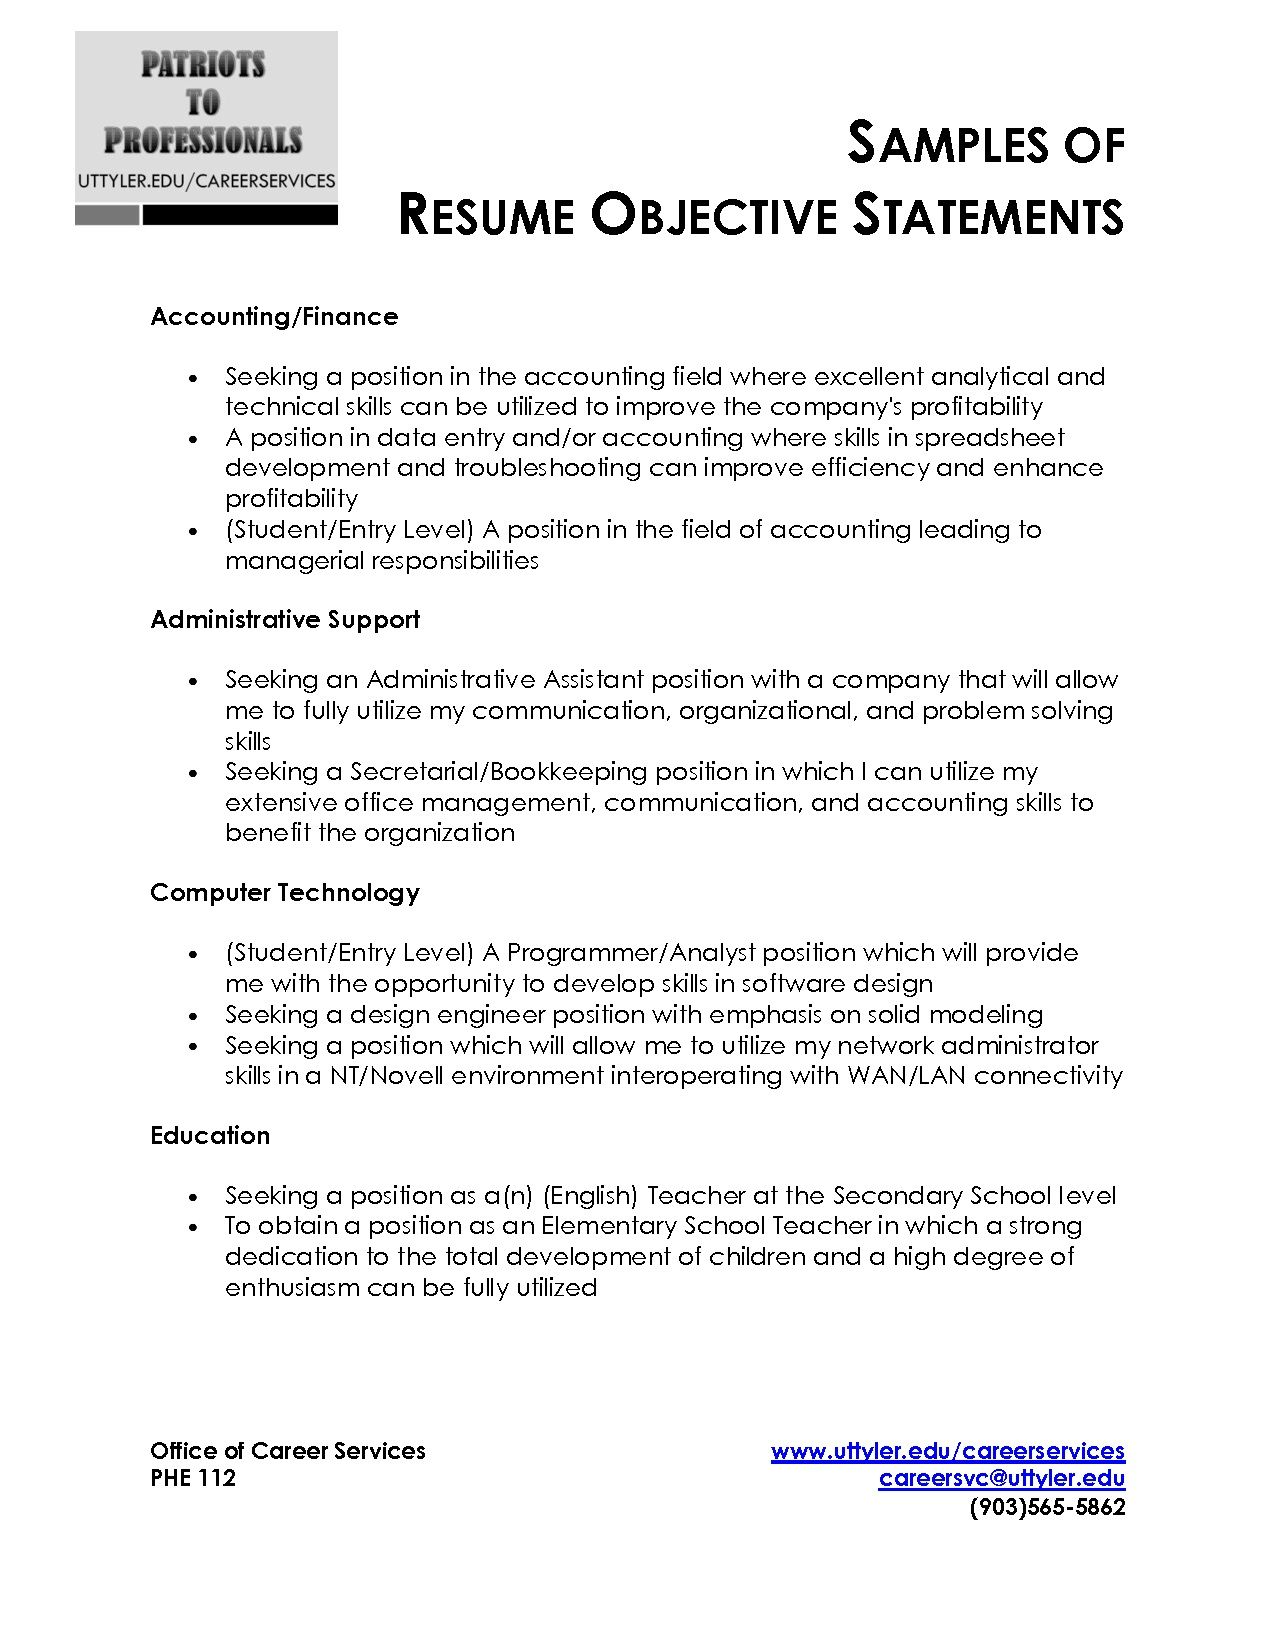 Good Resume Objective Sample Resume Objective Statement  Adsbygoogle  Window